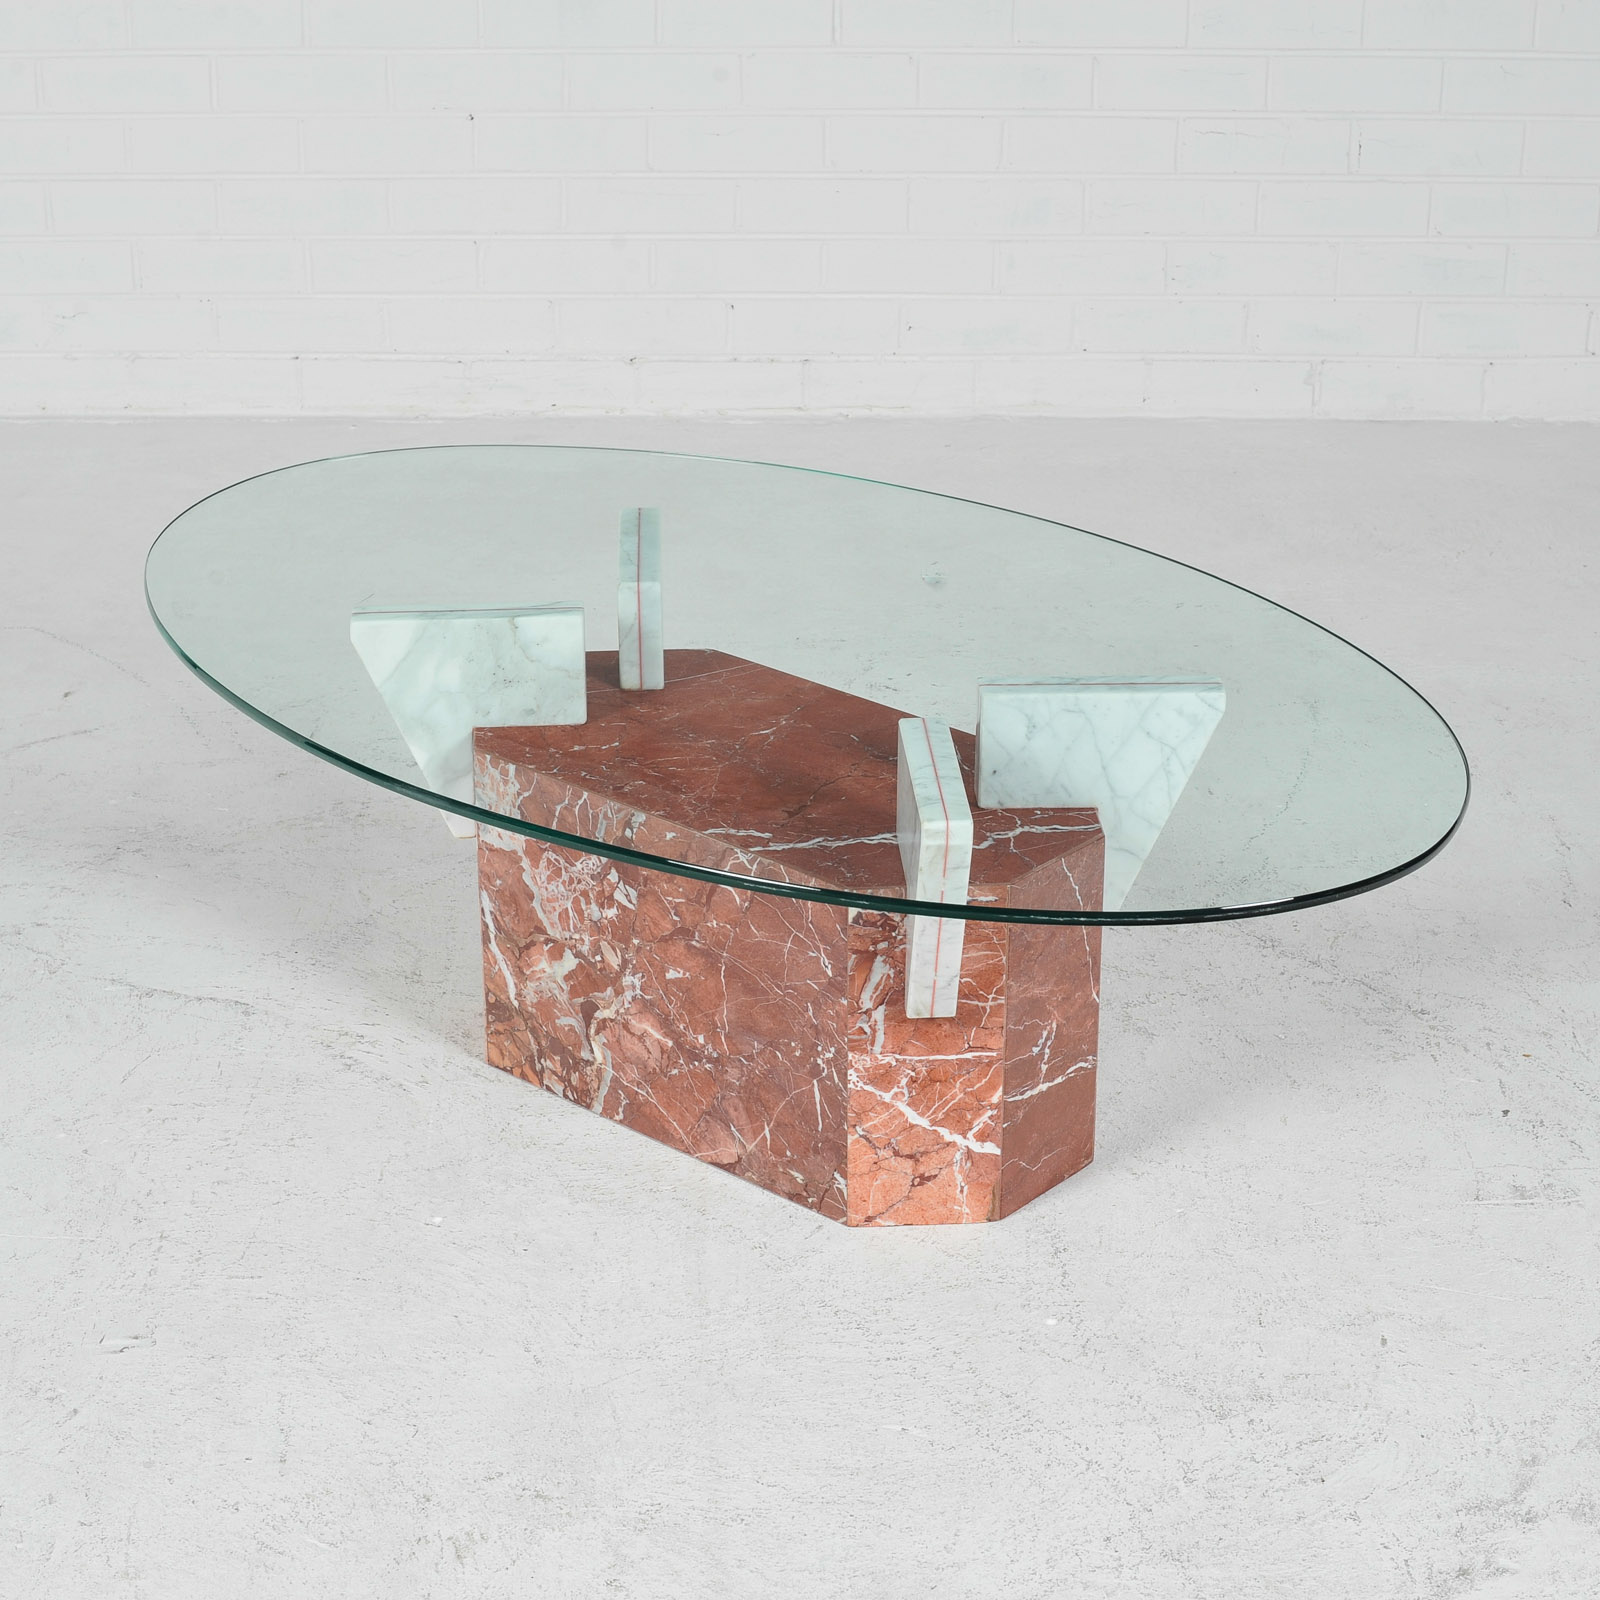 Marble Glass Top Coffee Table: Coffee Table In Marble With Glass Top, 1980s, Italy